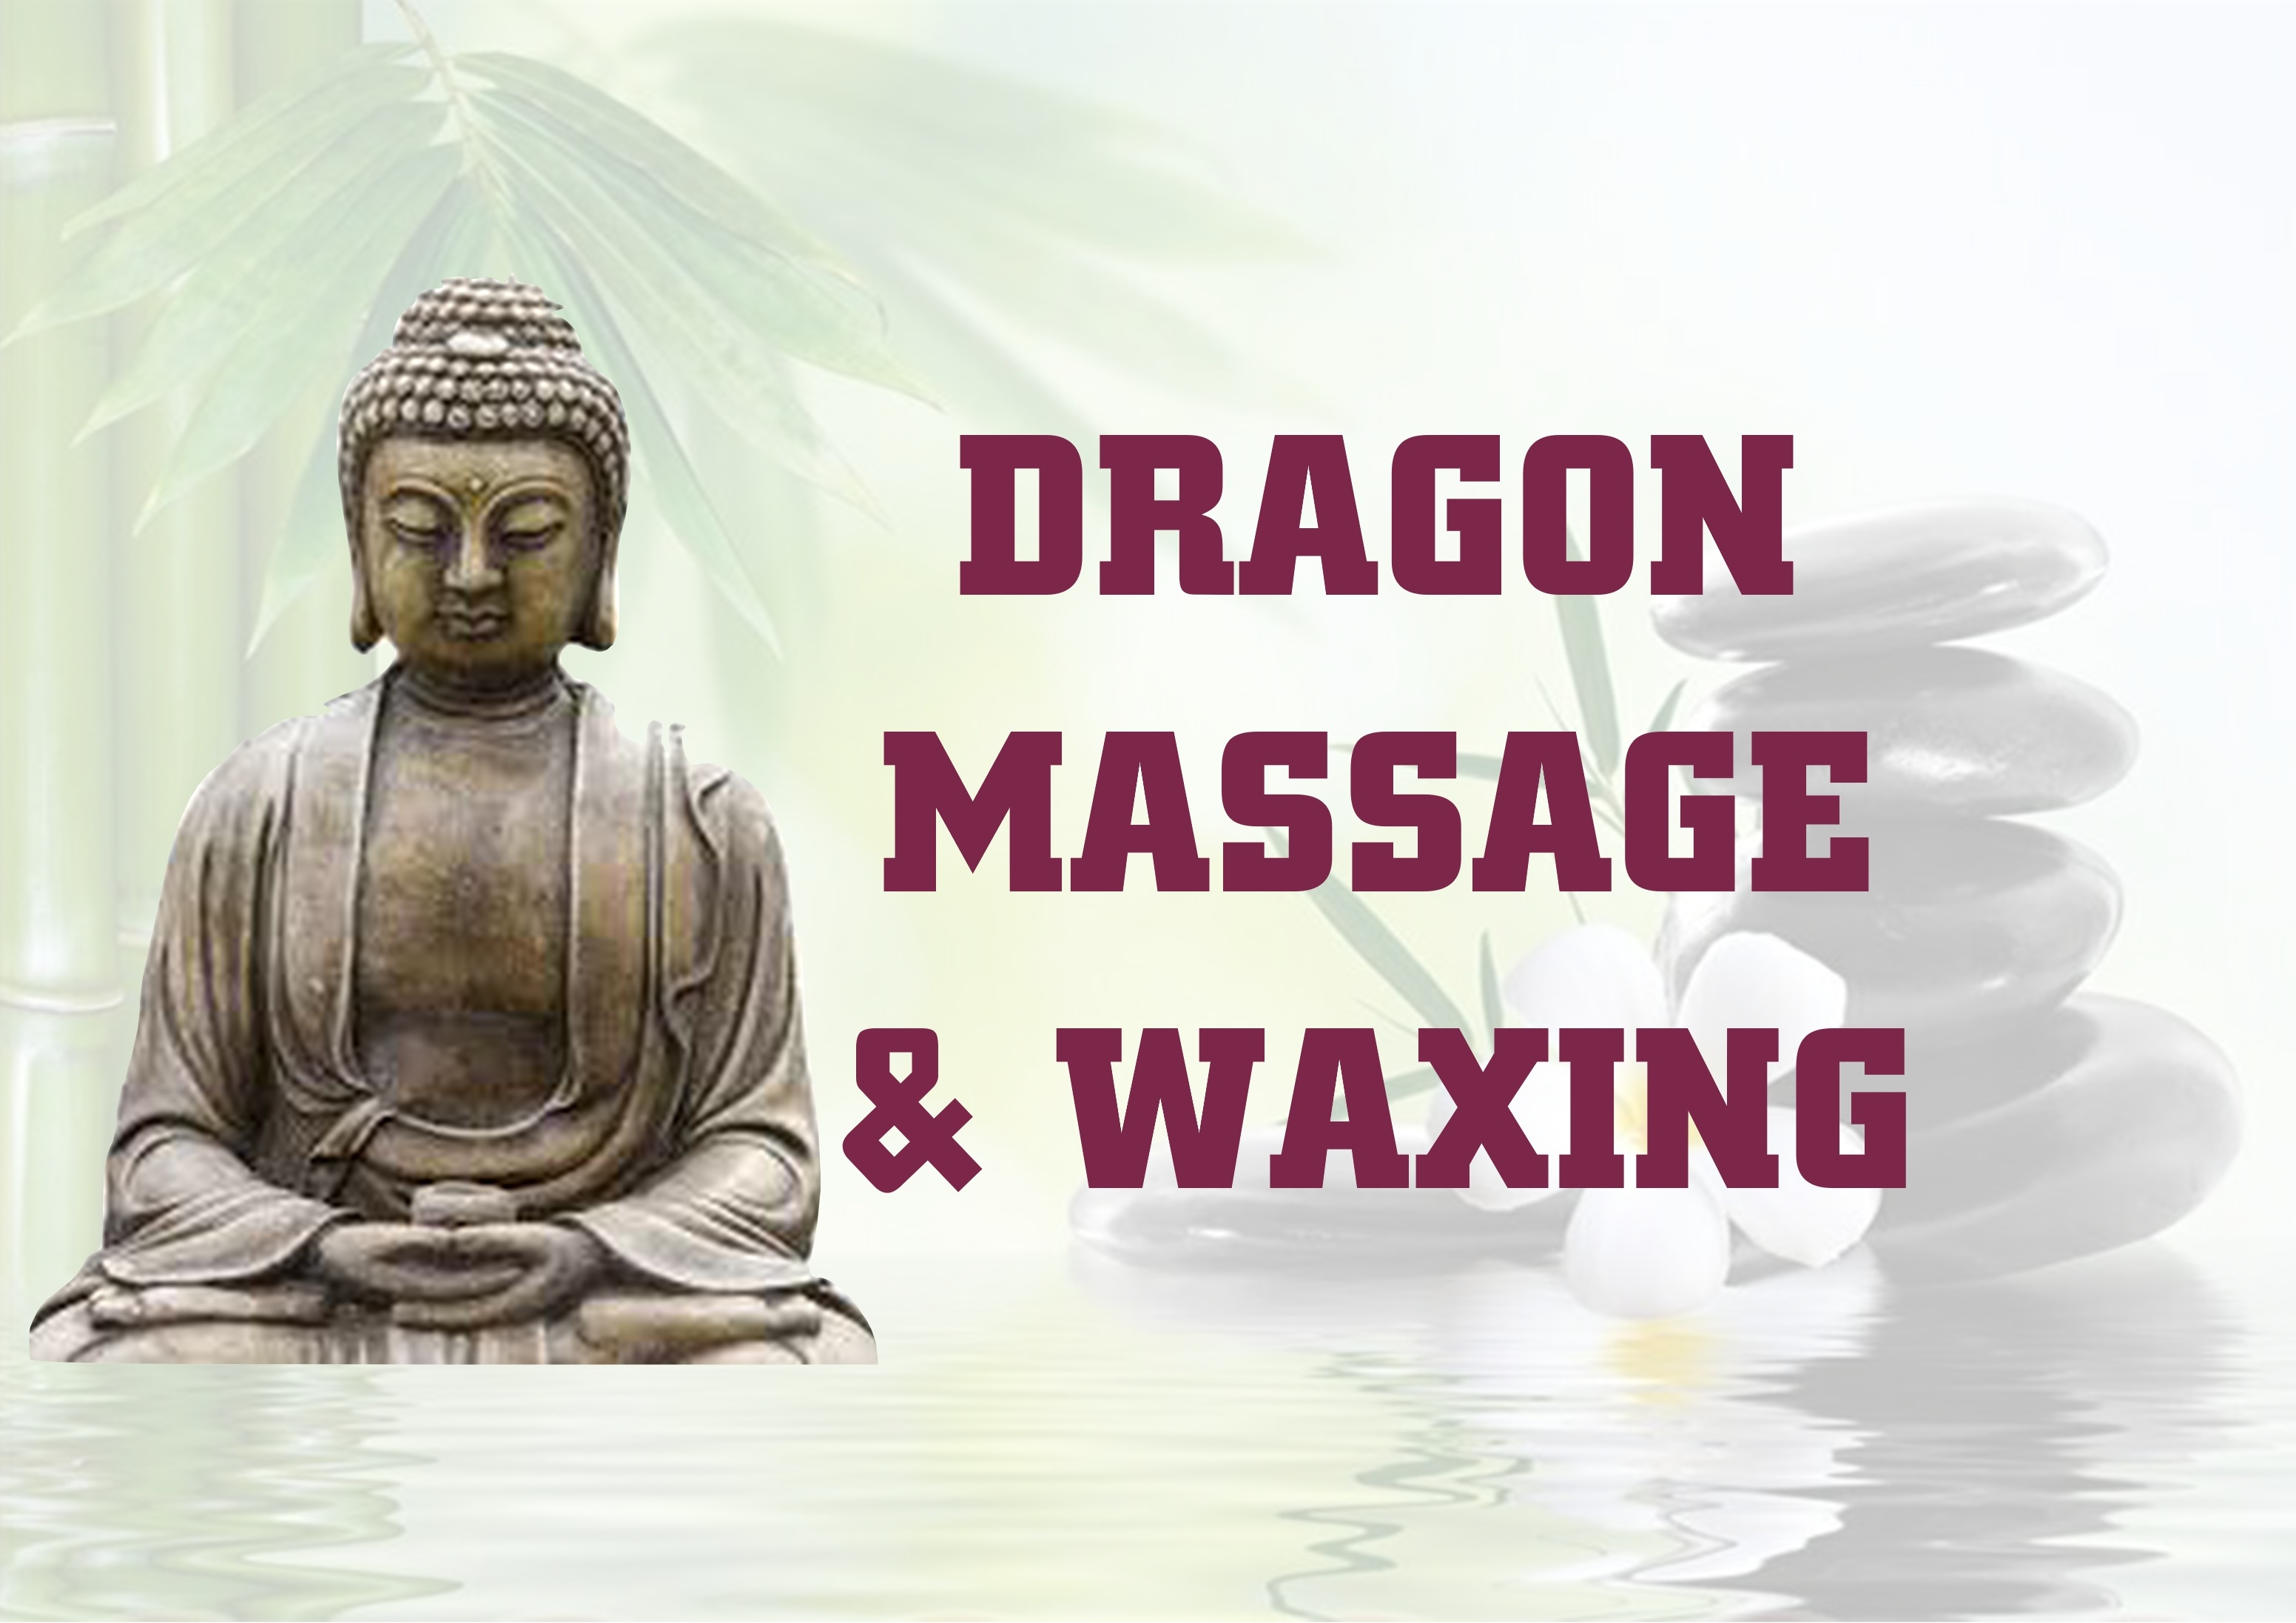 Dragon waxing and massage